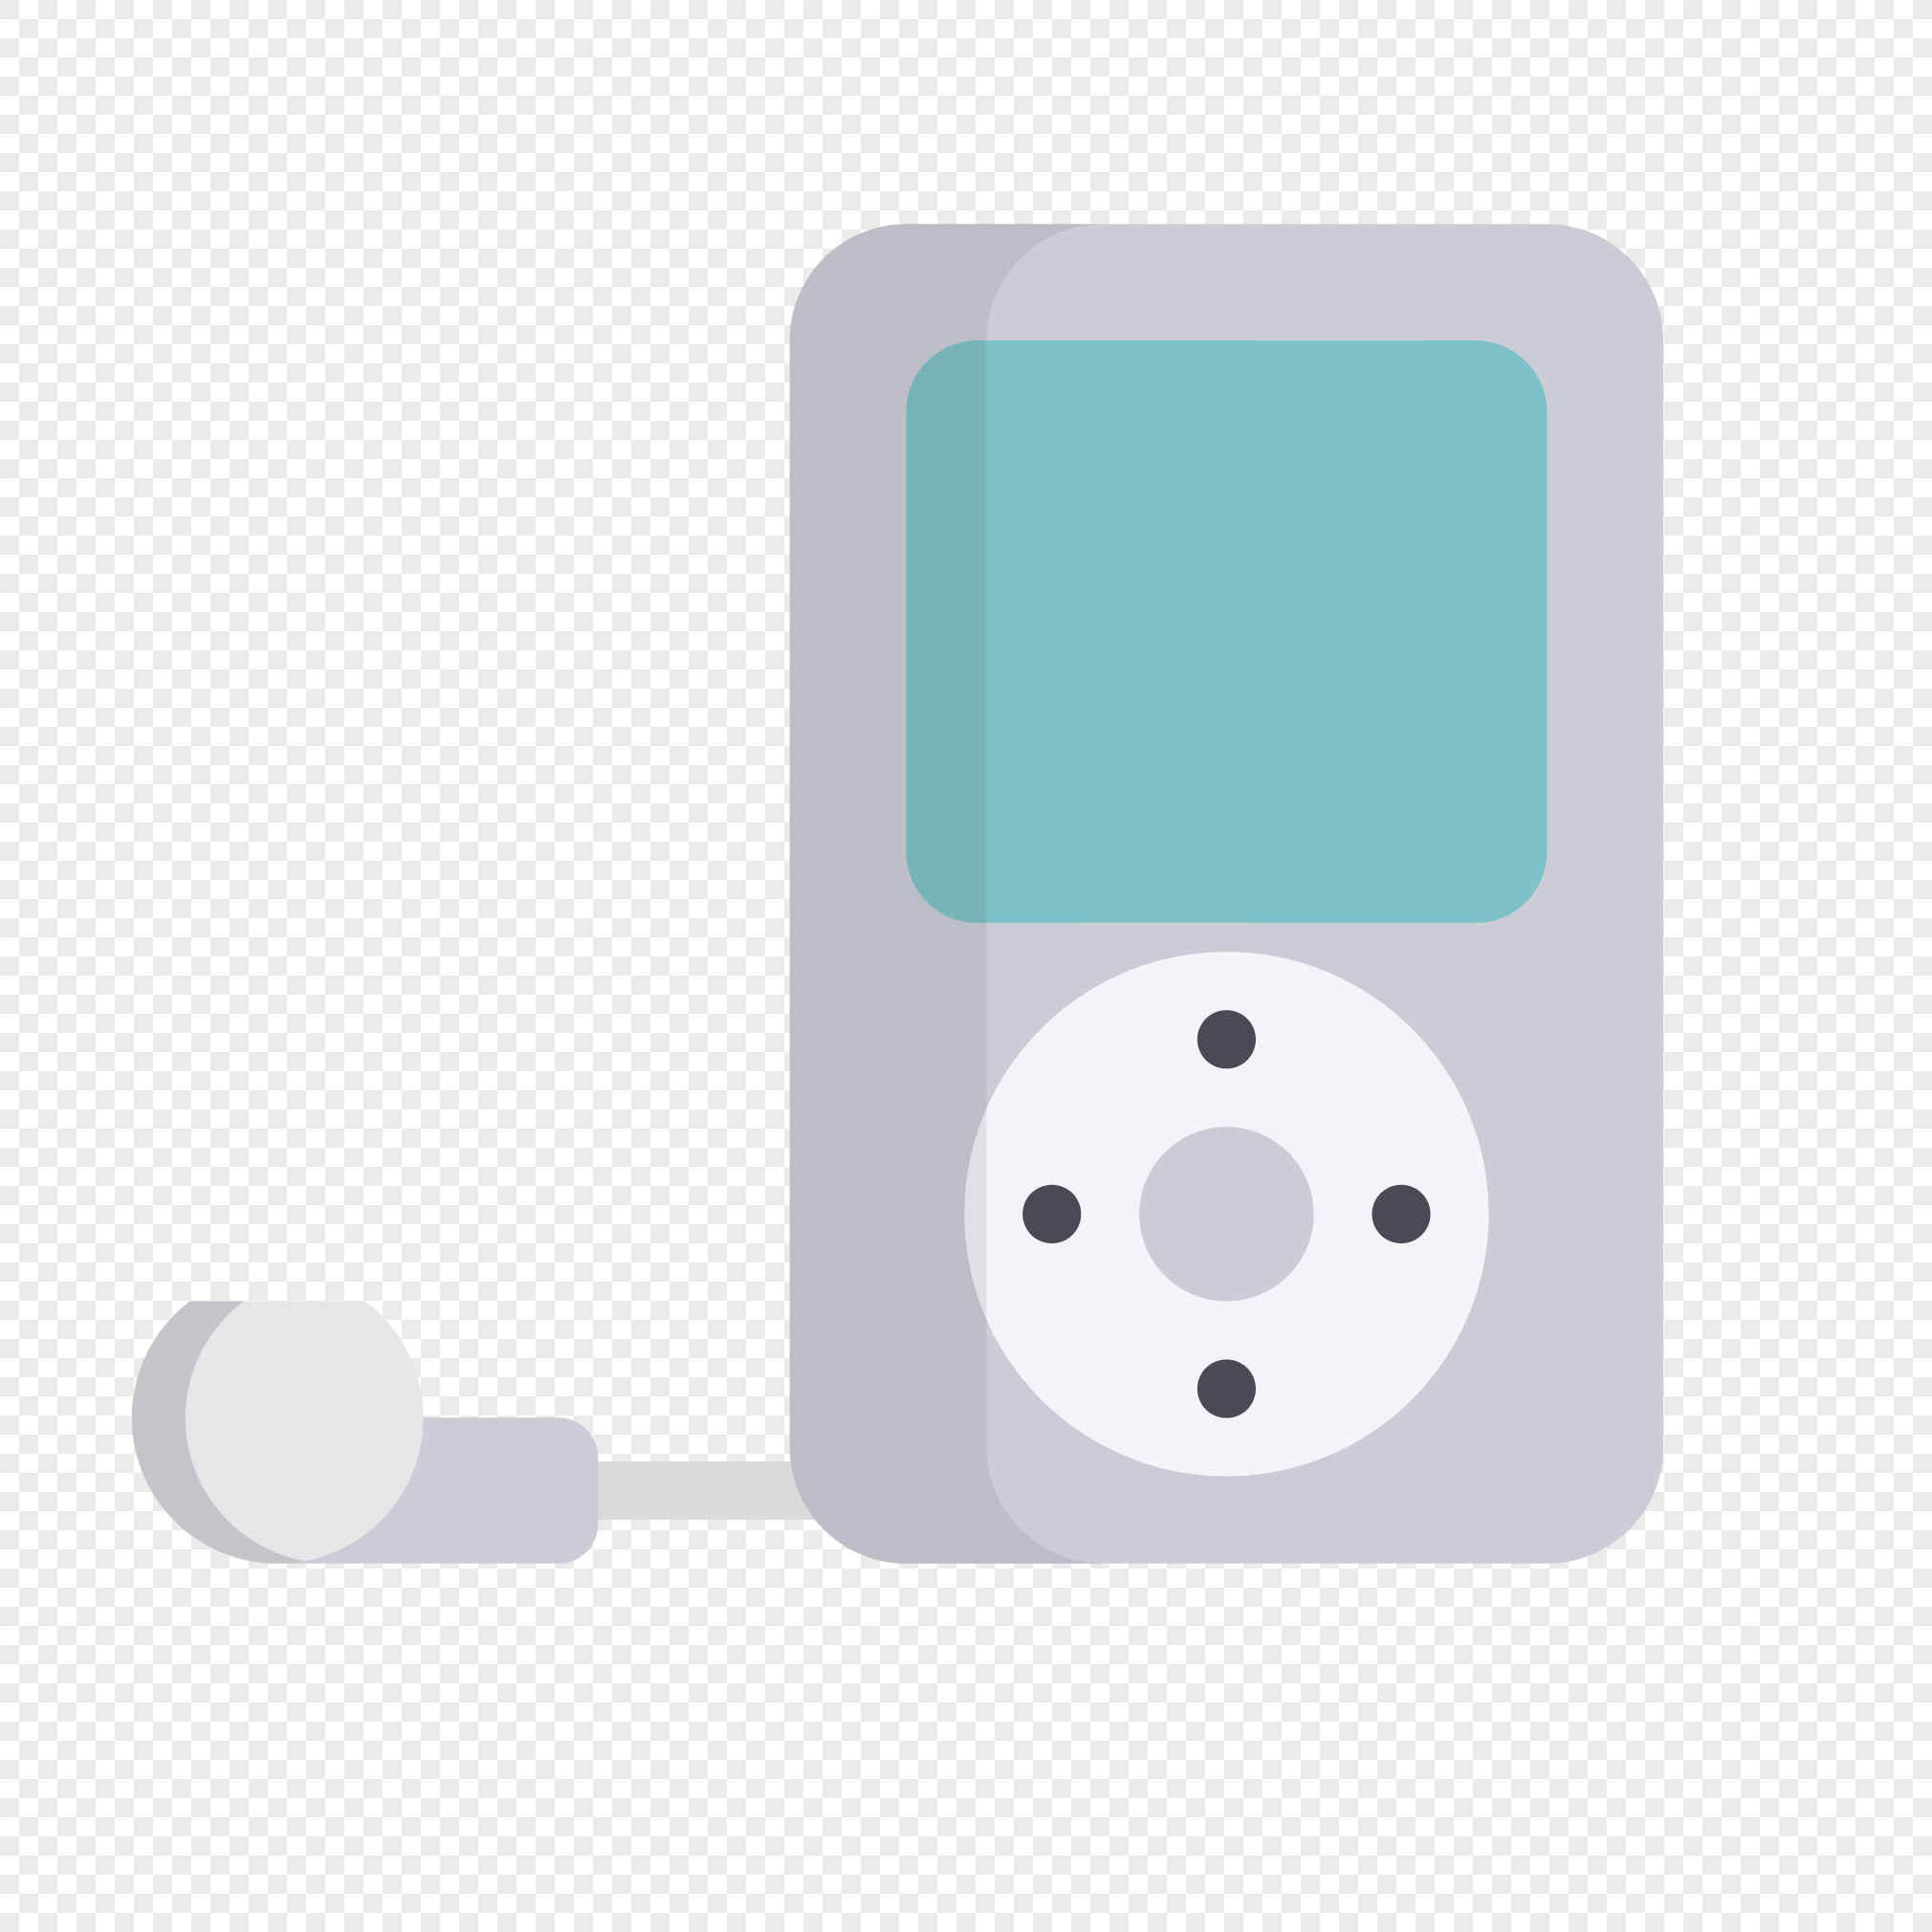 Ipod Cartoon Free Download Clip Art.